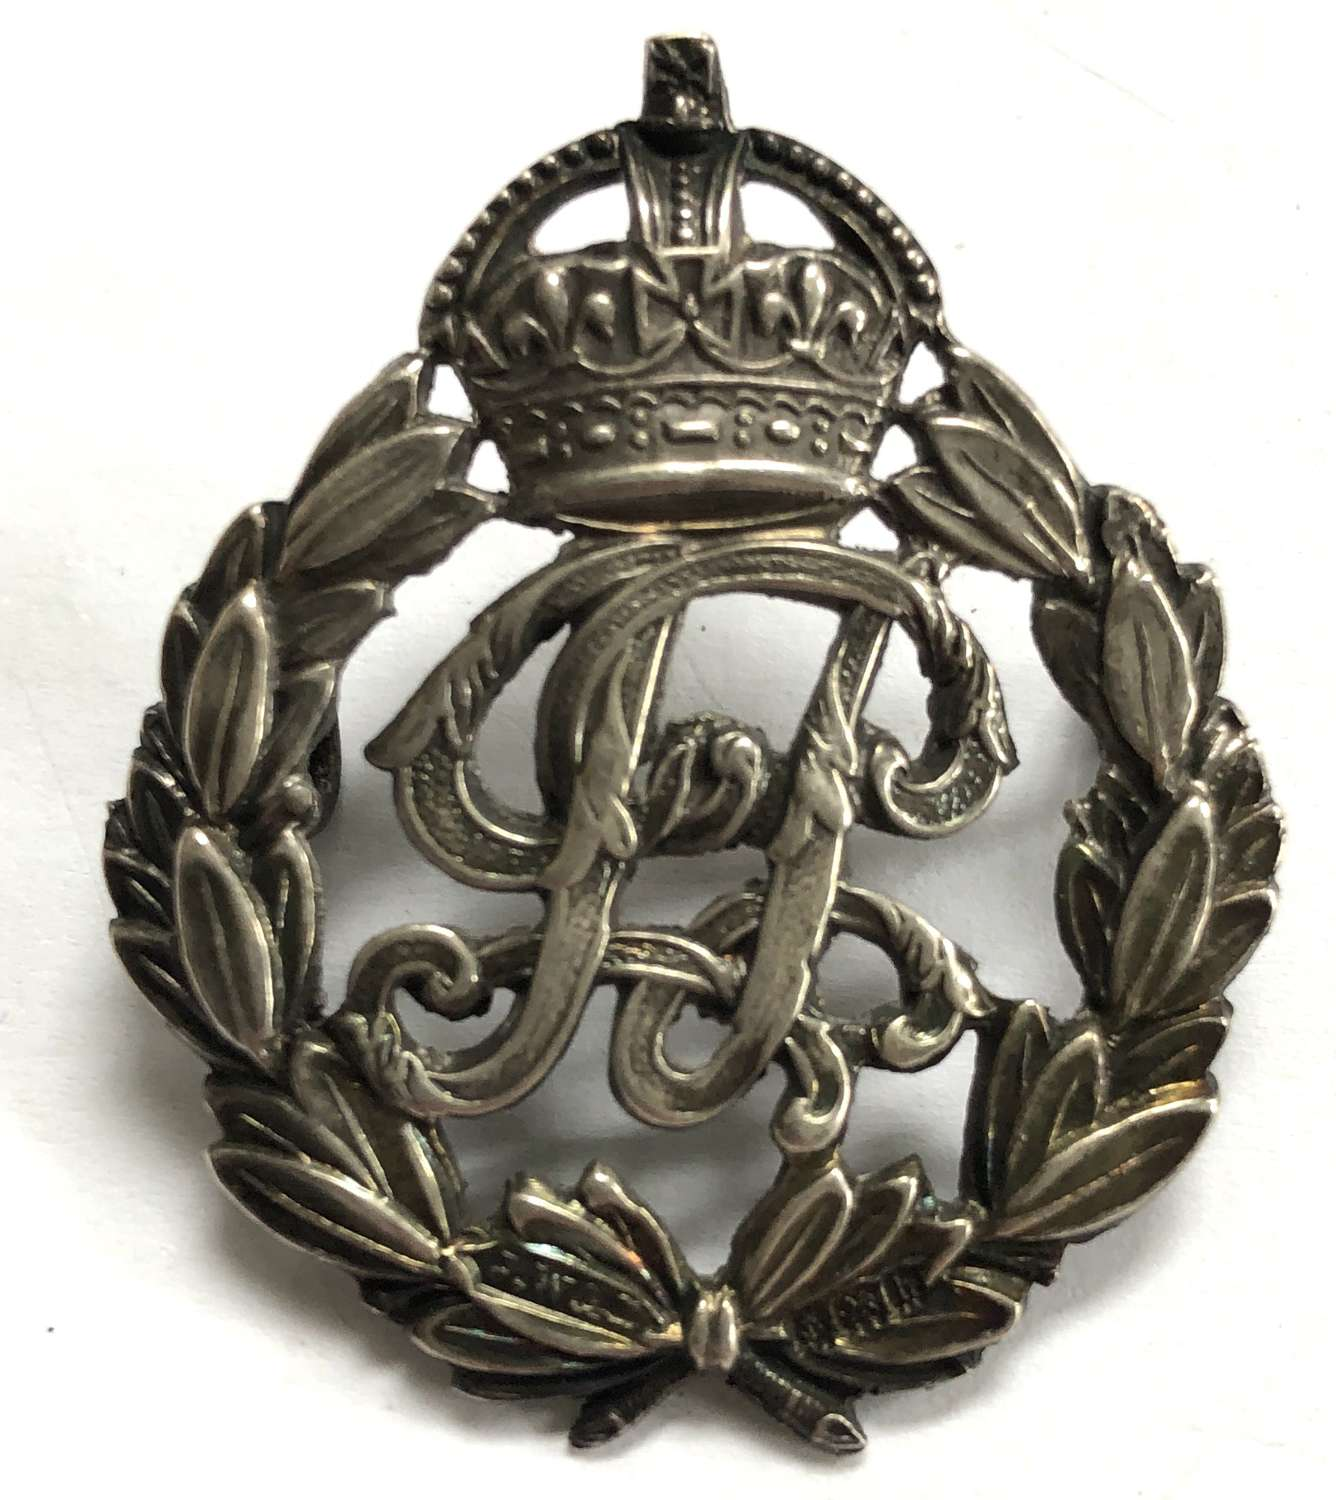 Indian Police Officer's 1907 Birmingham HM silver cap badge by Wise